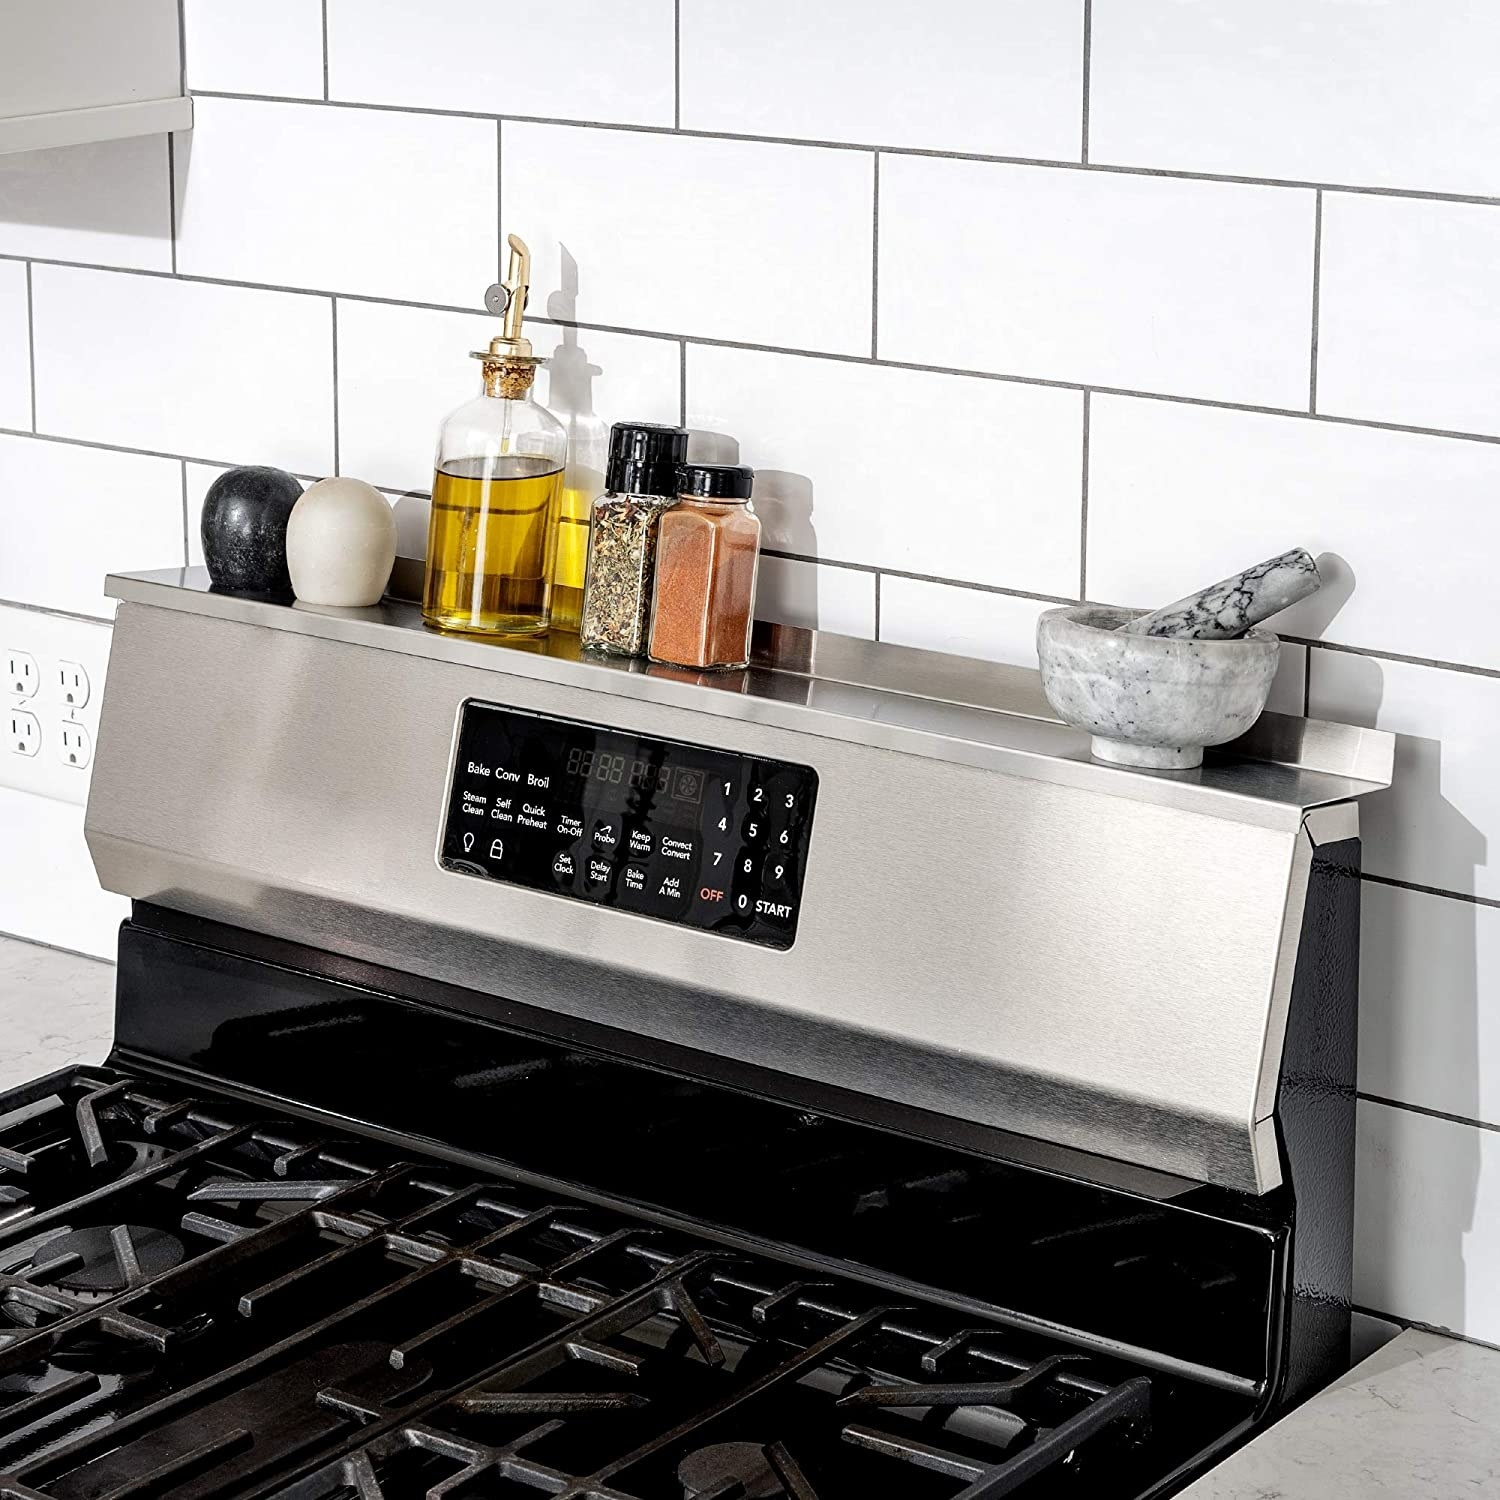 The stainless shelf on top of the back of a stove range holding oil, salt and pepper shakers, other spices, and a mortar and pestle